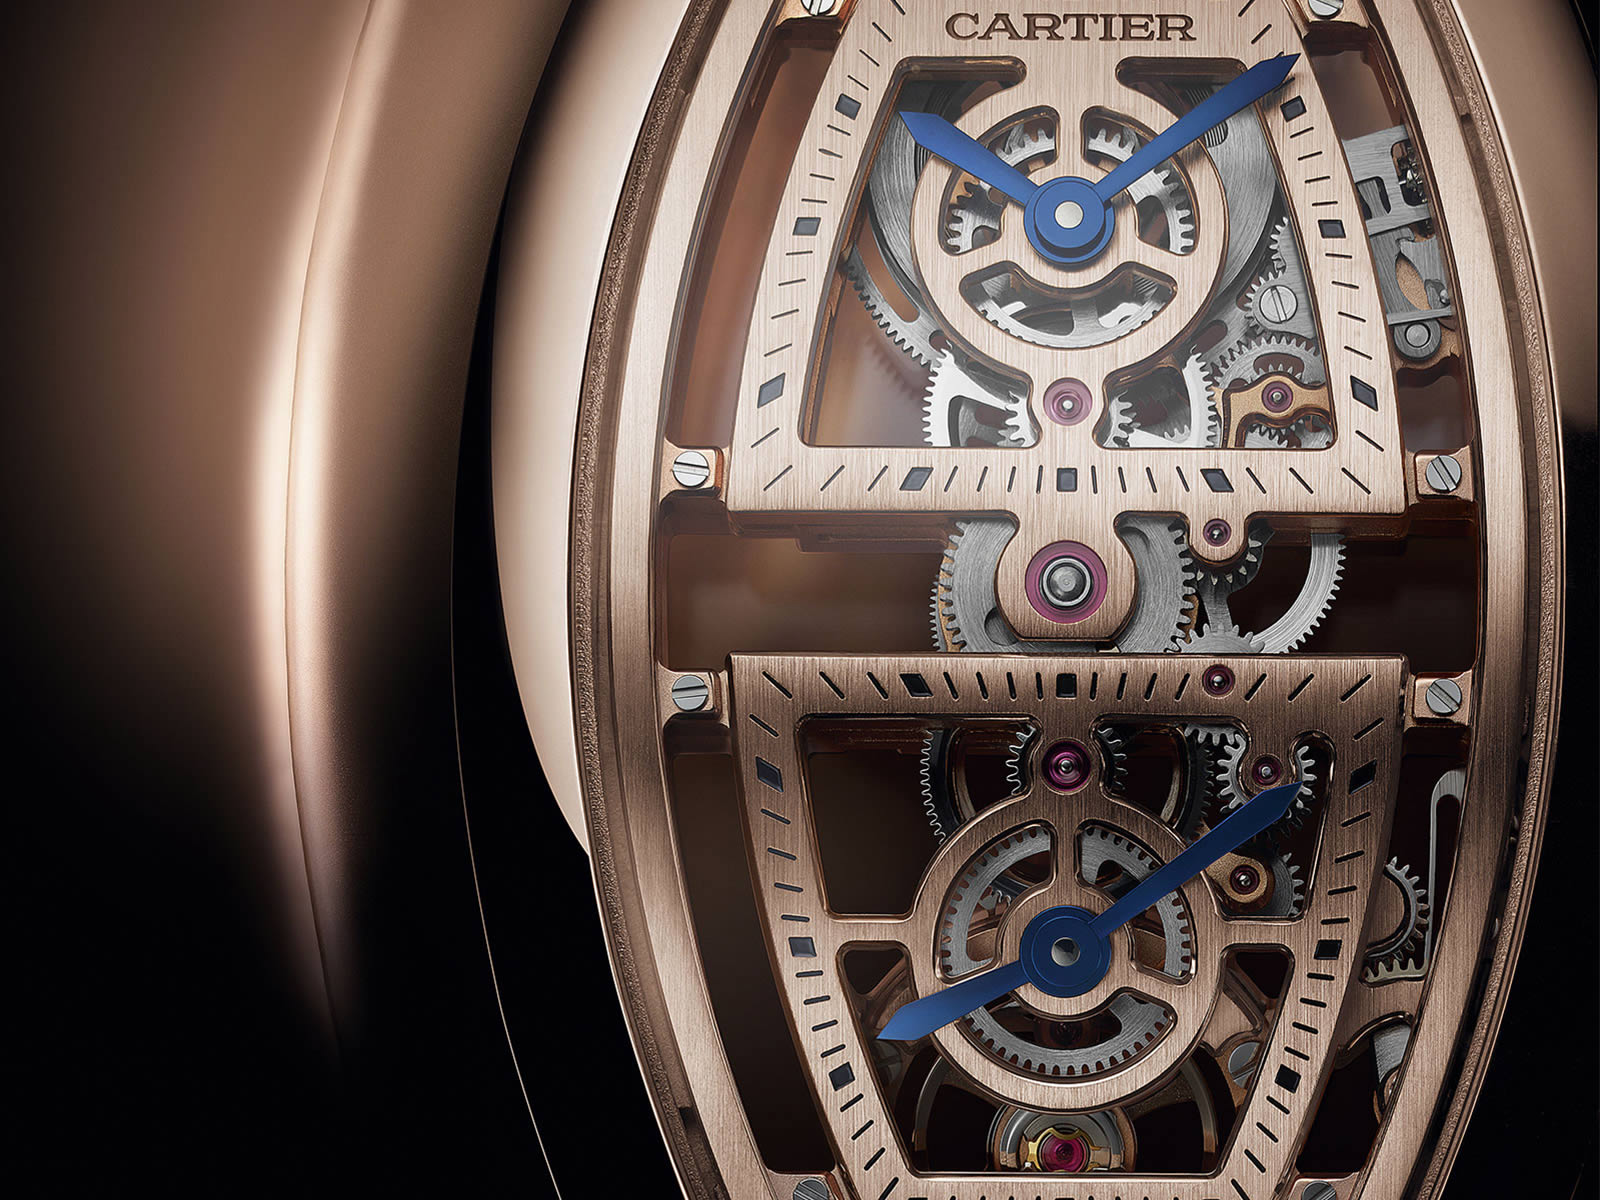 wgtn0006-cartier-prive-tonneau-time-only-skeleton-dual-time-1-.jpg